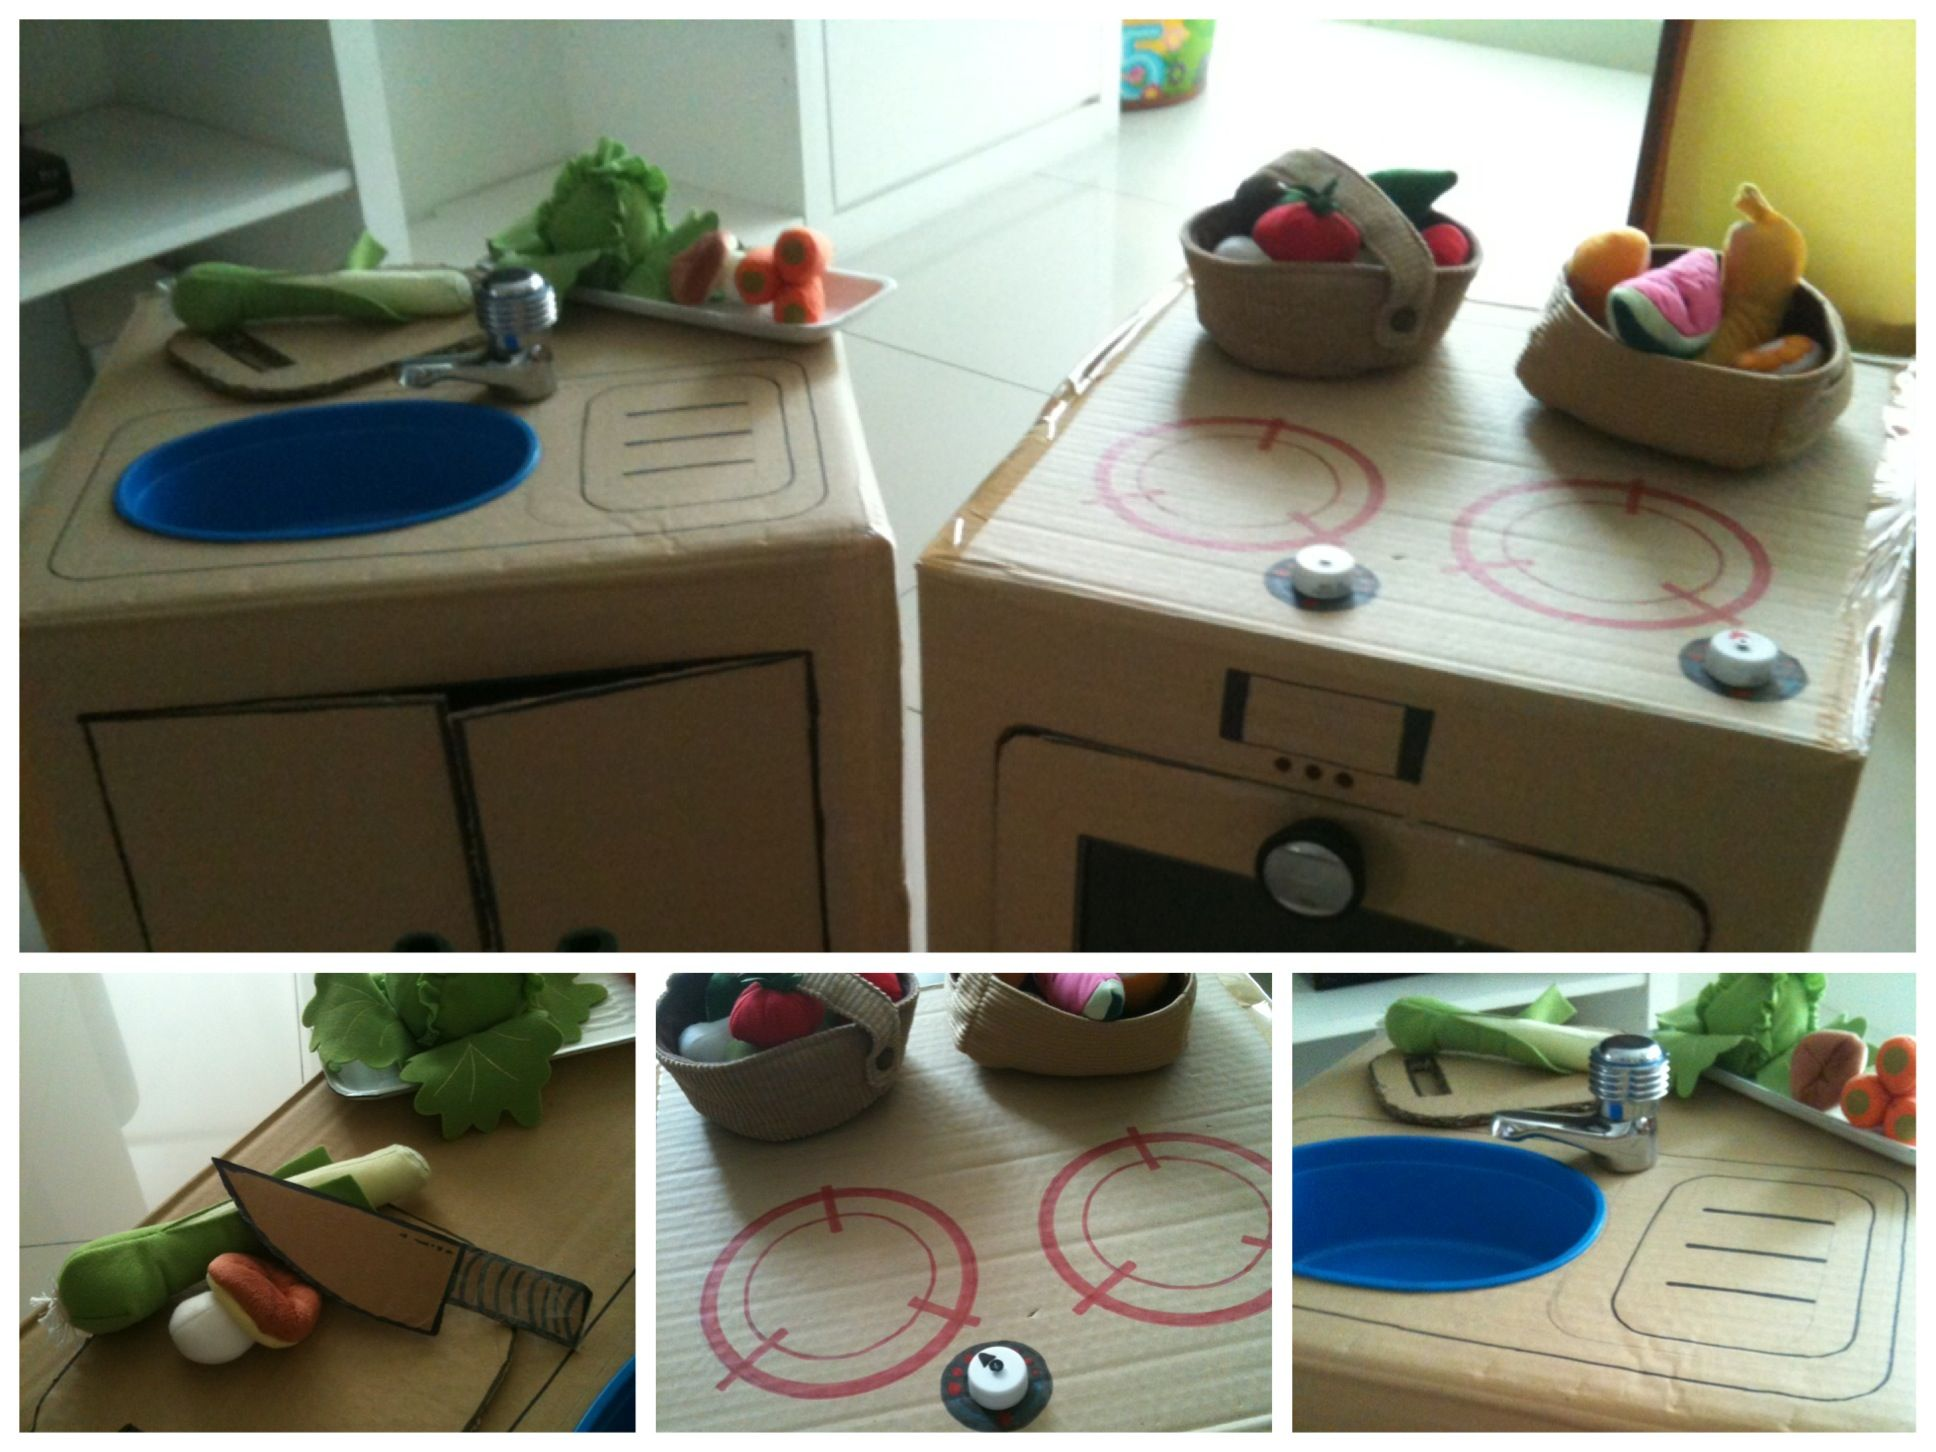 Interesting Ikea Childrens Kitchen Set Cardboard With Toy Vegetables And Fruits Inside Decorating